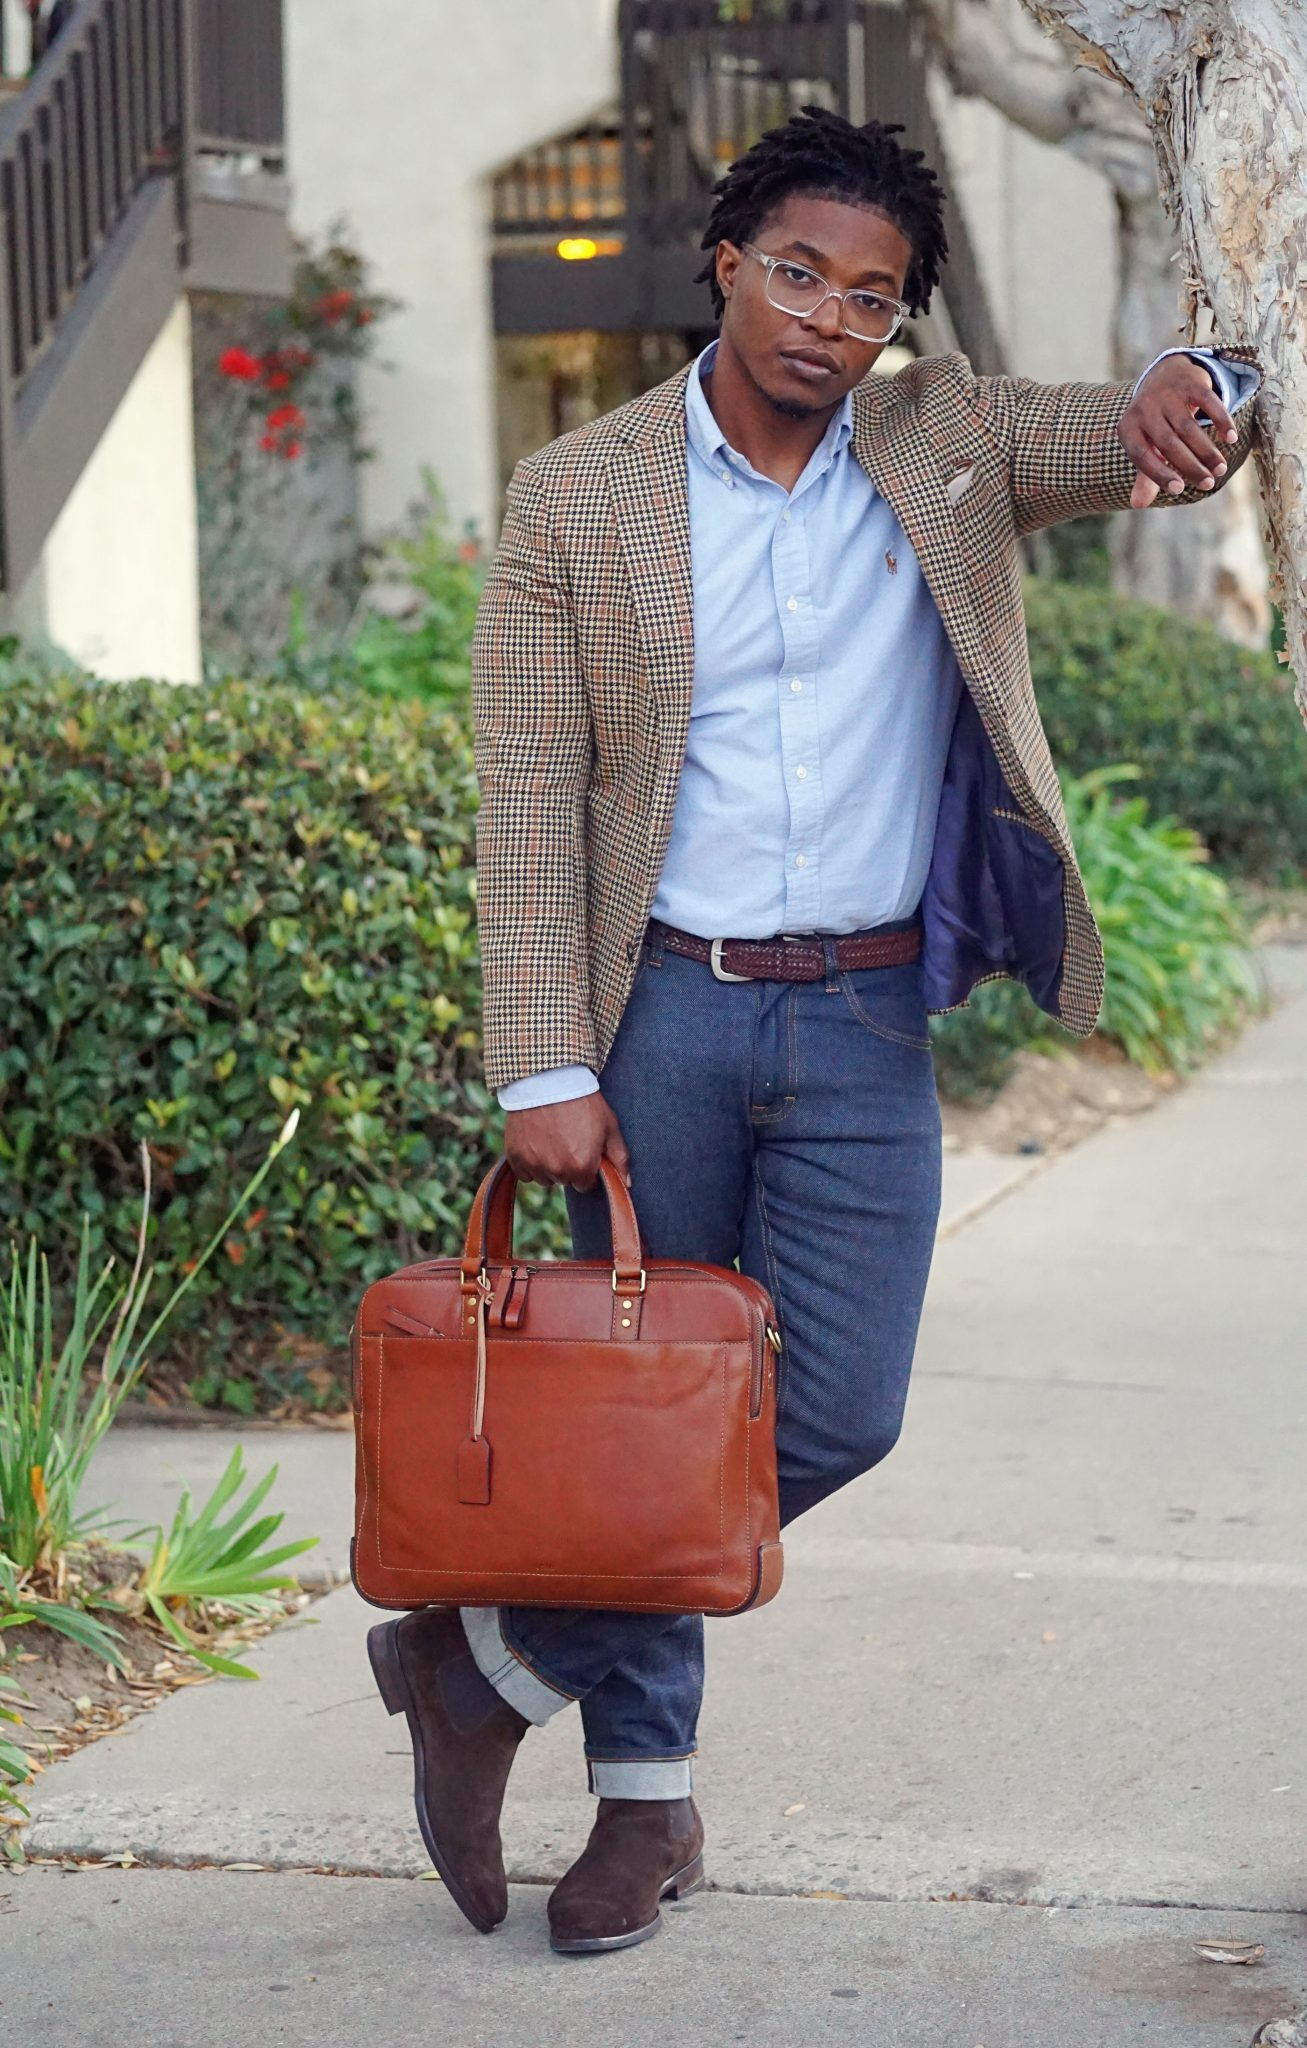 wearing-oxford-shirt-with-plaid-blazer-mens-fall-outfit-ideas